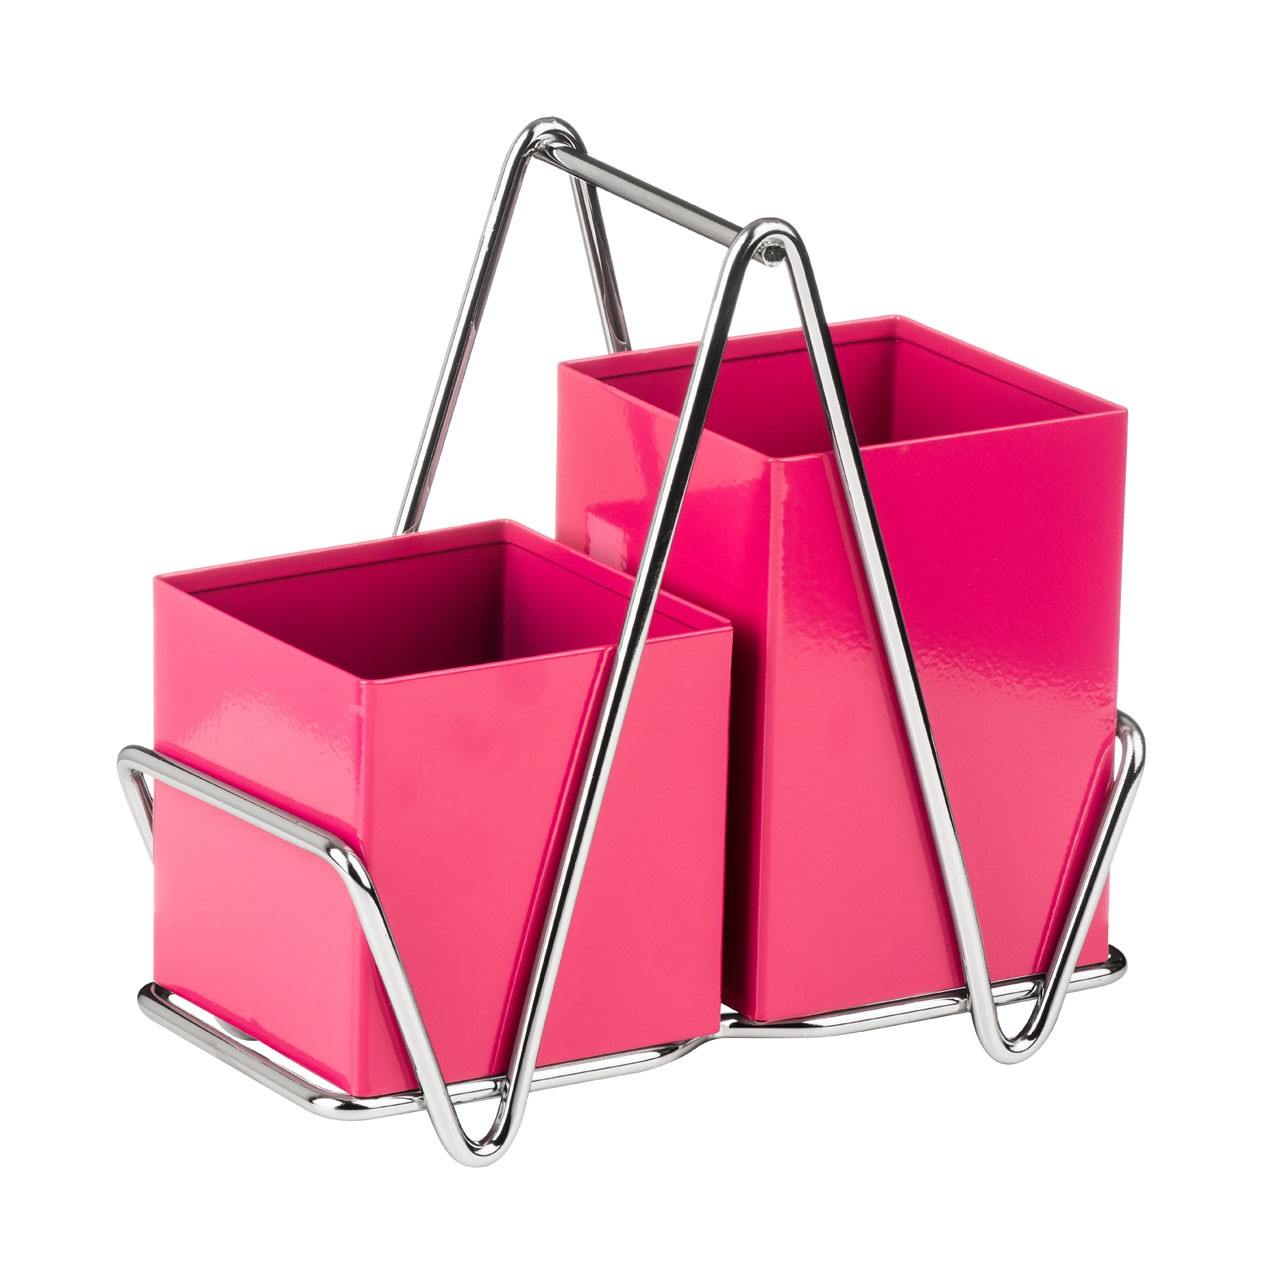 2 Compartment Cutlery Caddy, Hot Pink